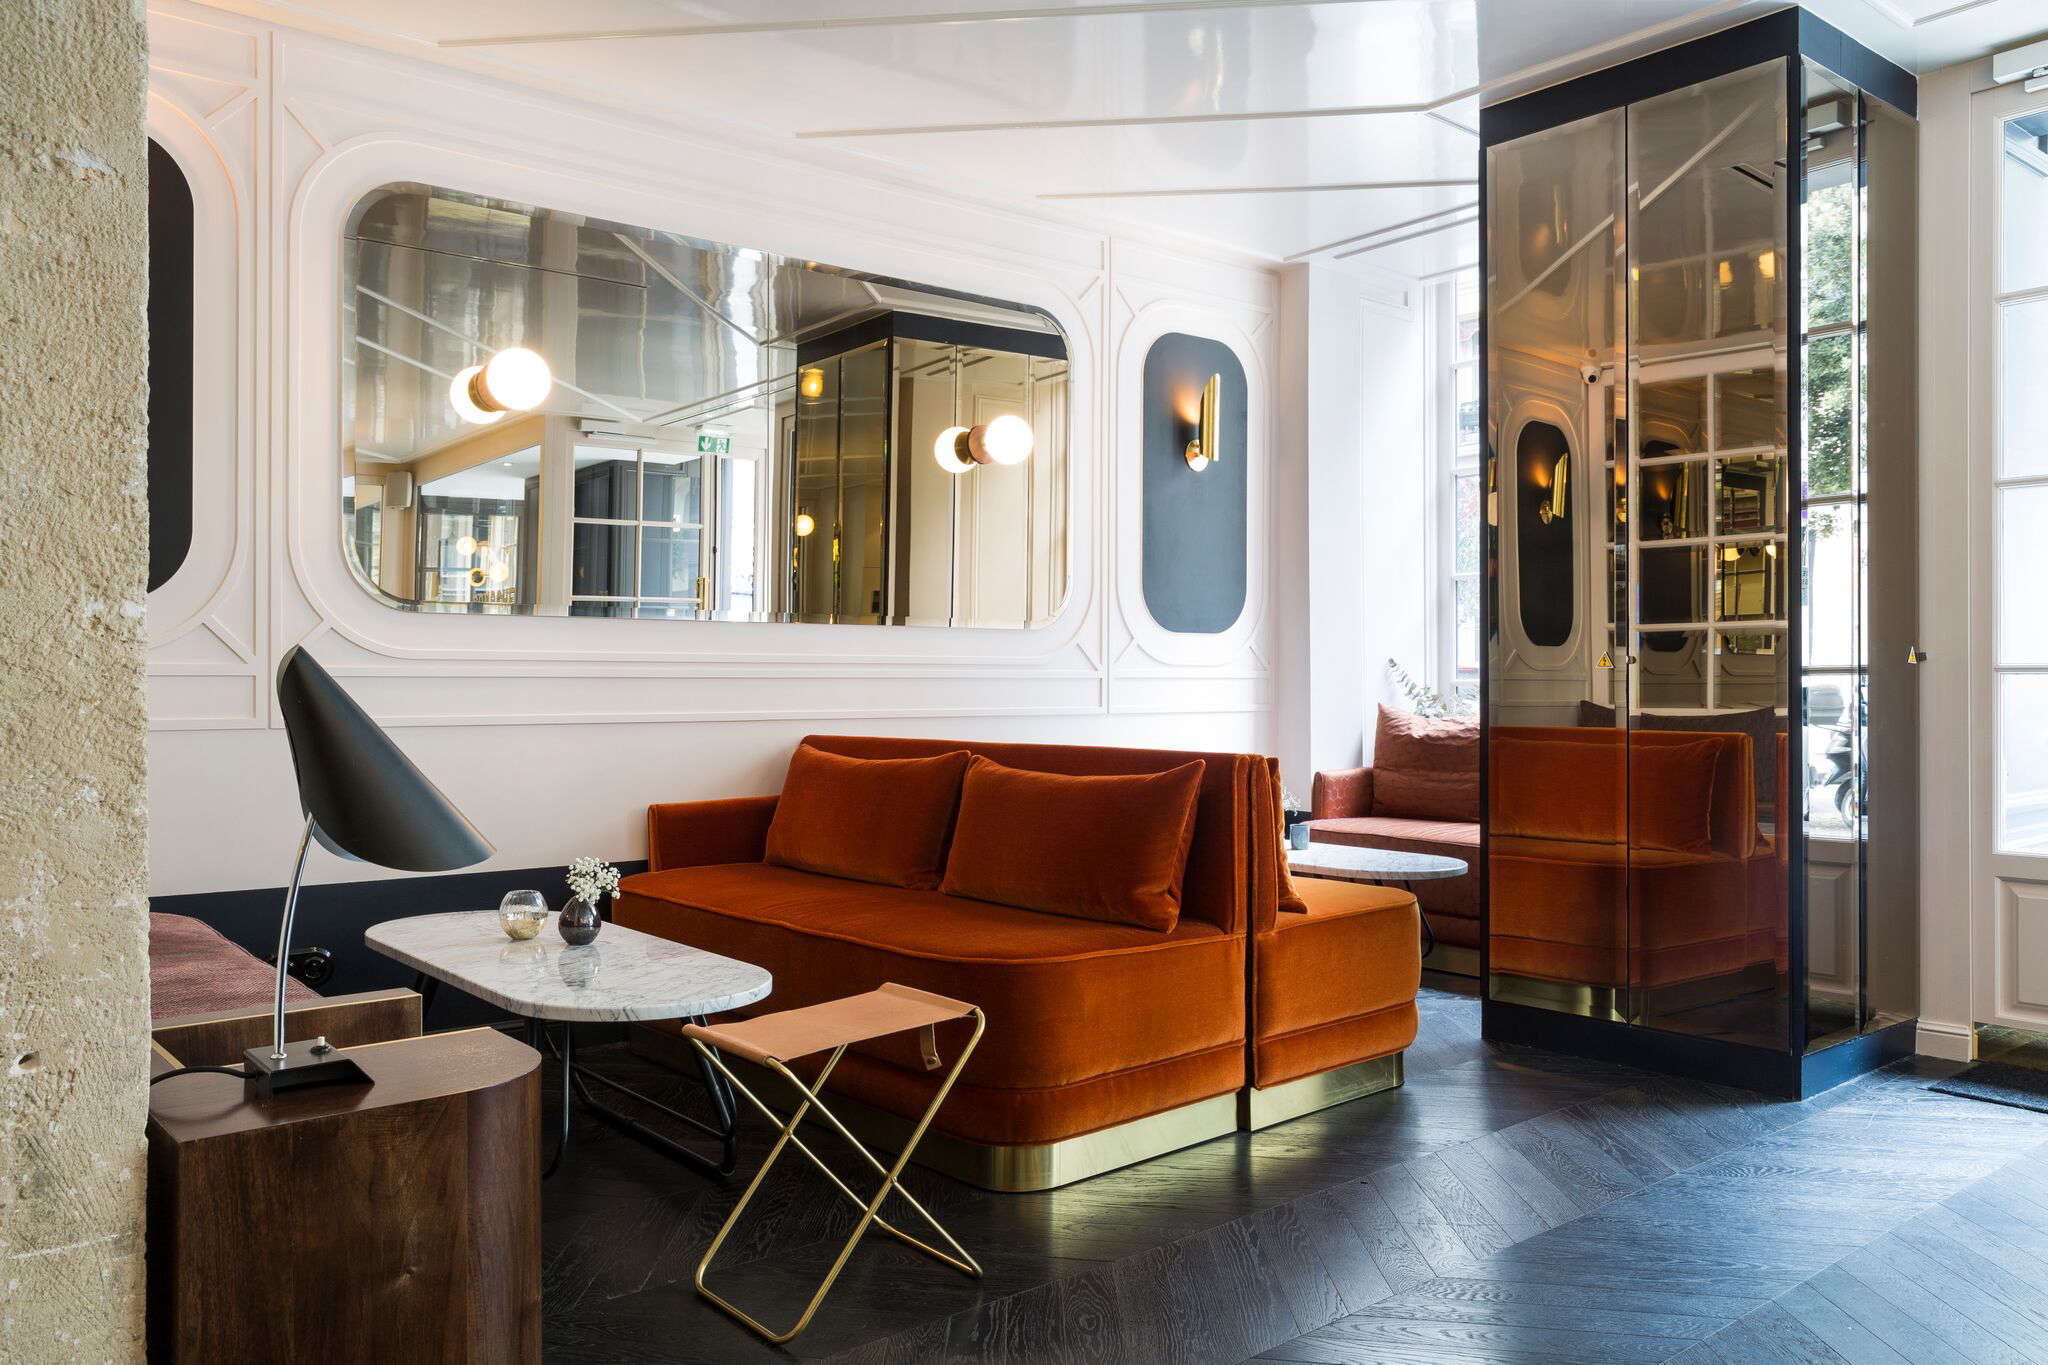 The in-house bistro, Restaurant Le Panache, has custom velvet-upholstered banquettes detailed with brass banding.